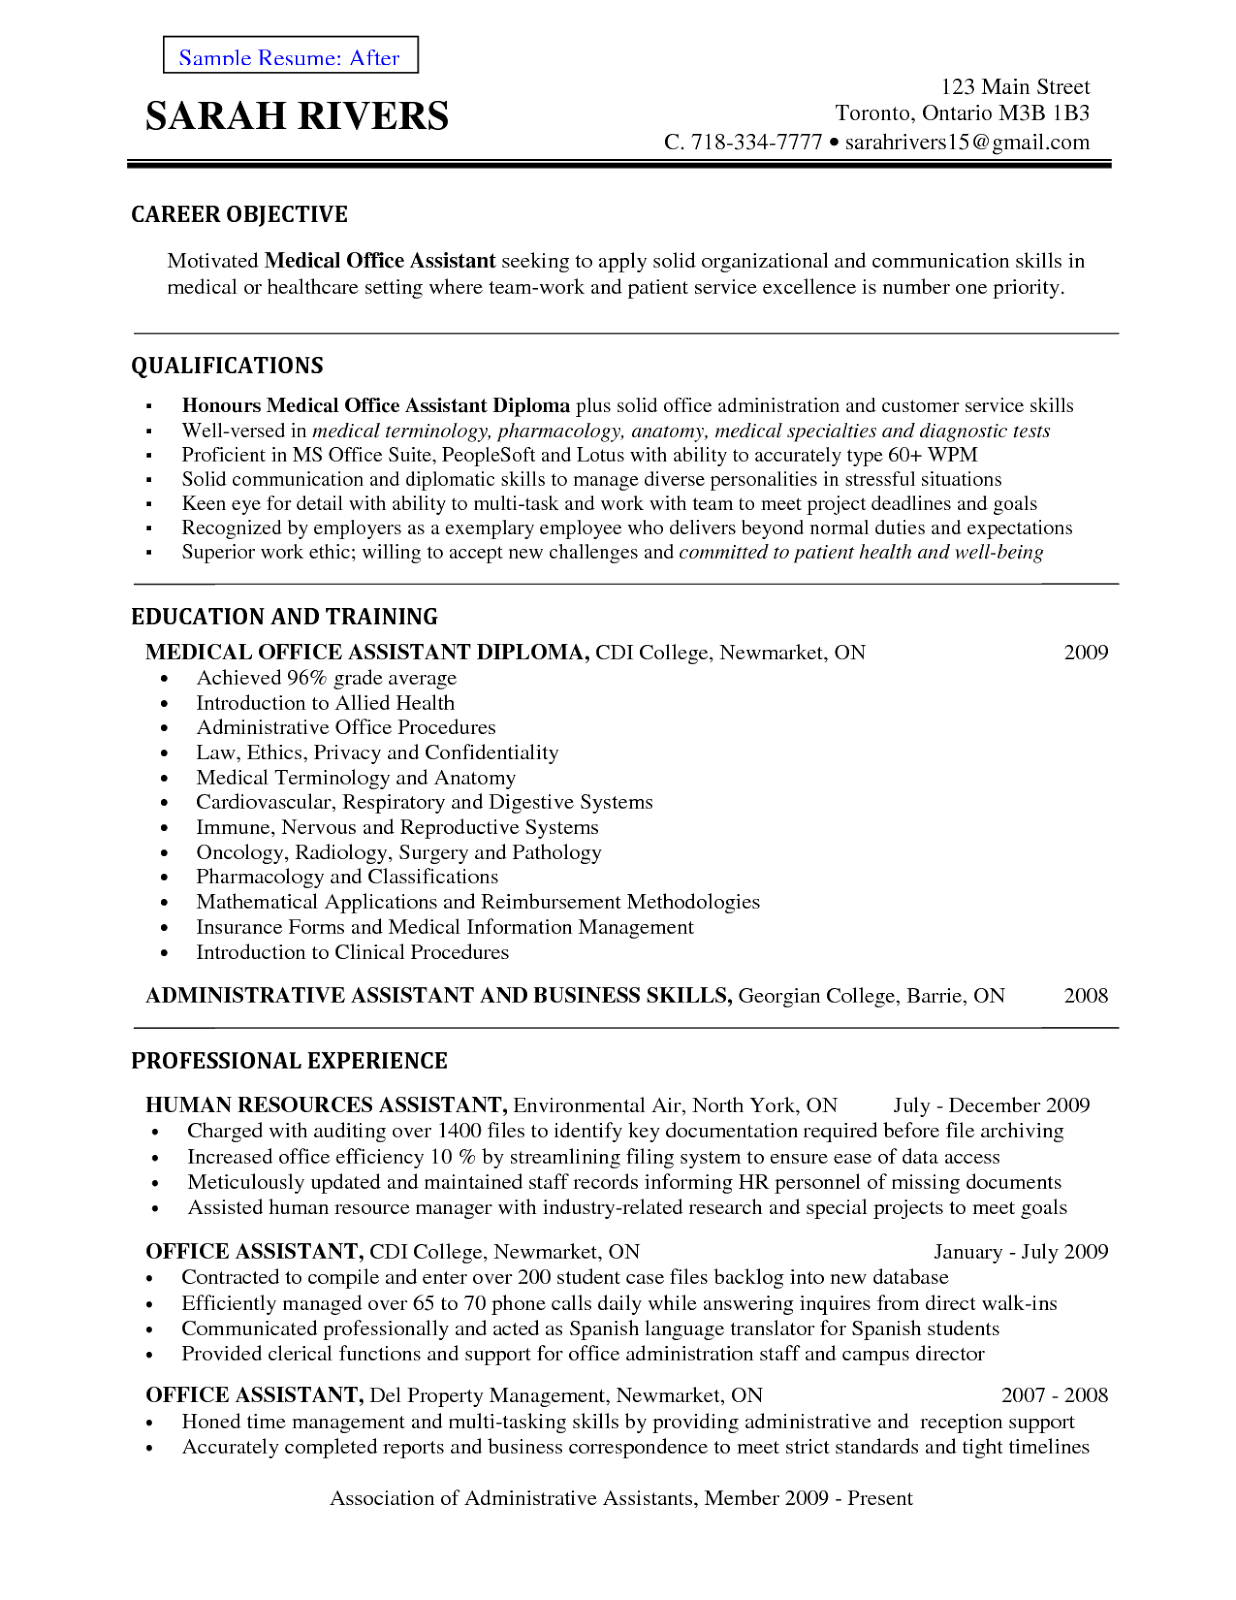 resume goals section